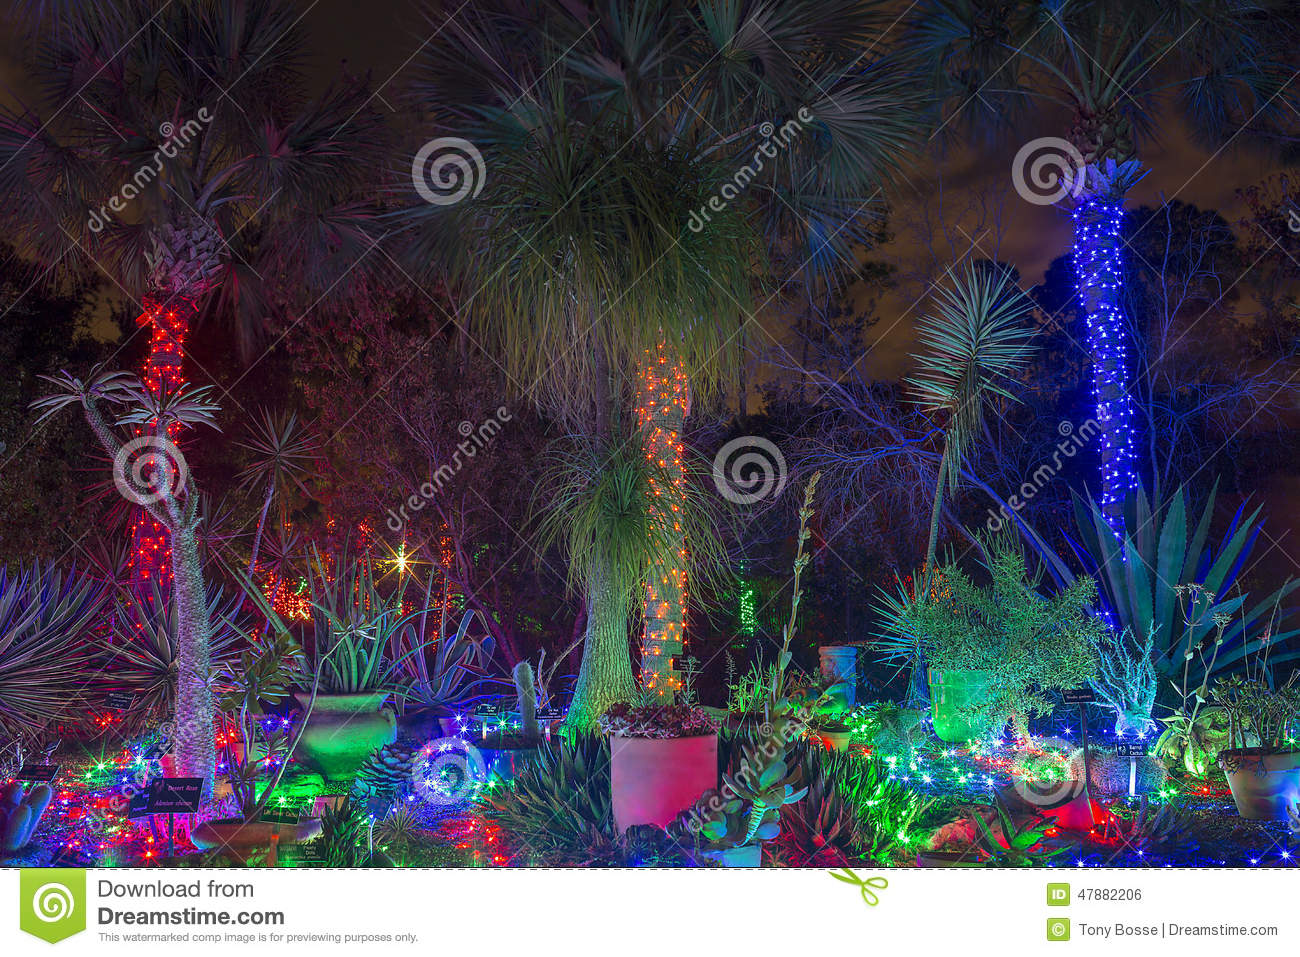 download tropical christmas garden stock photo image of trees 47882206